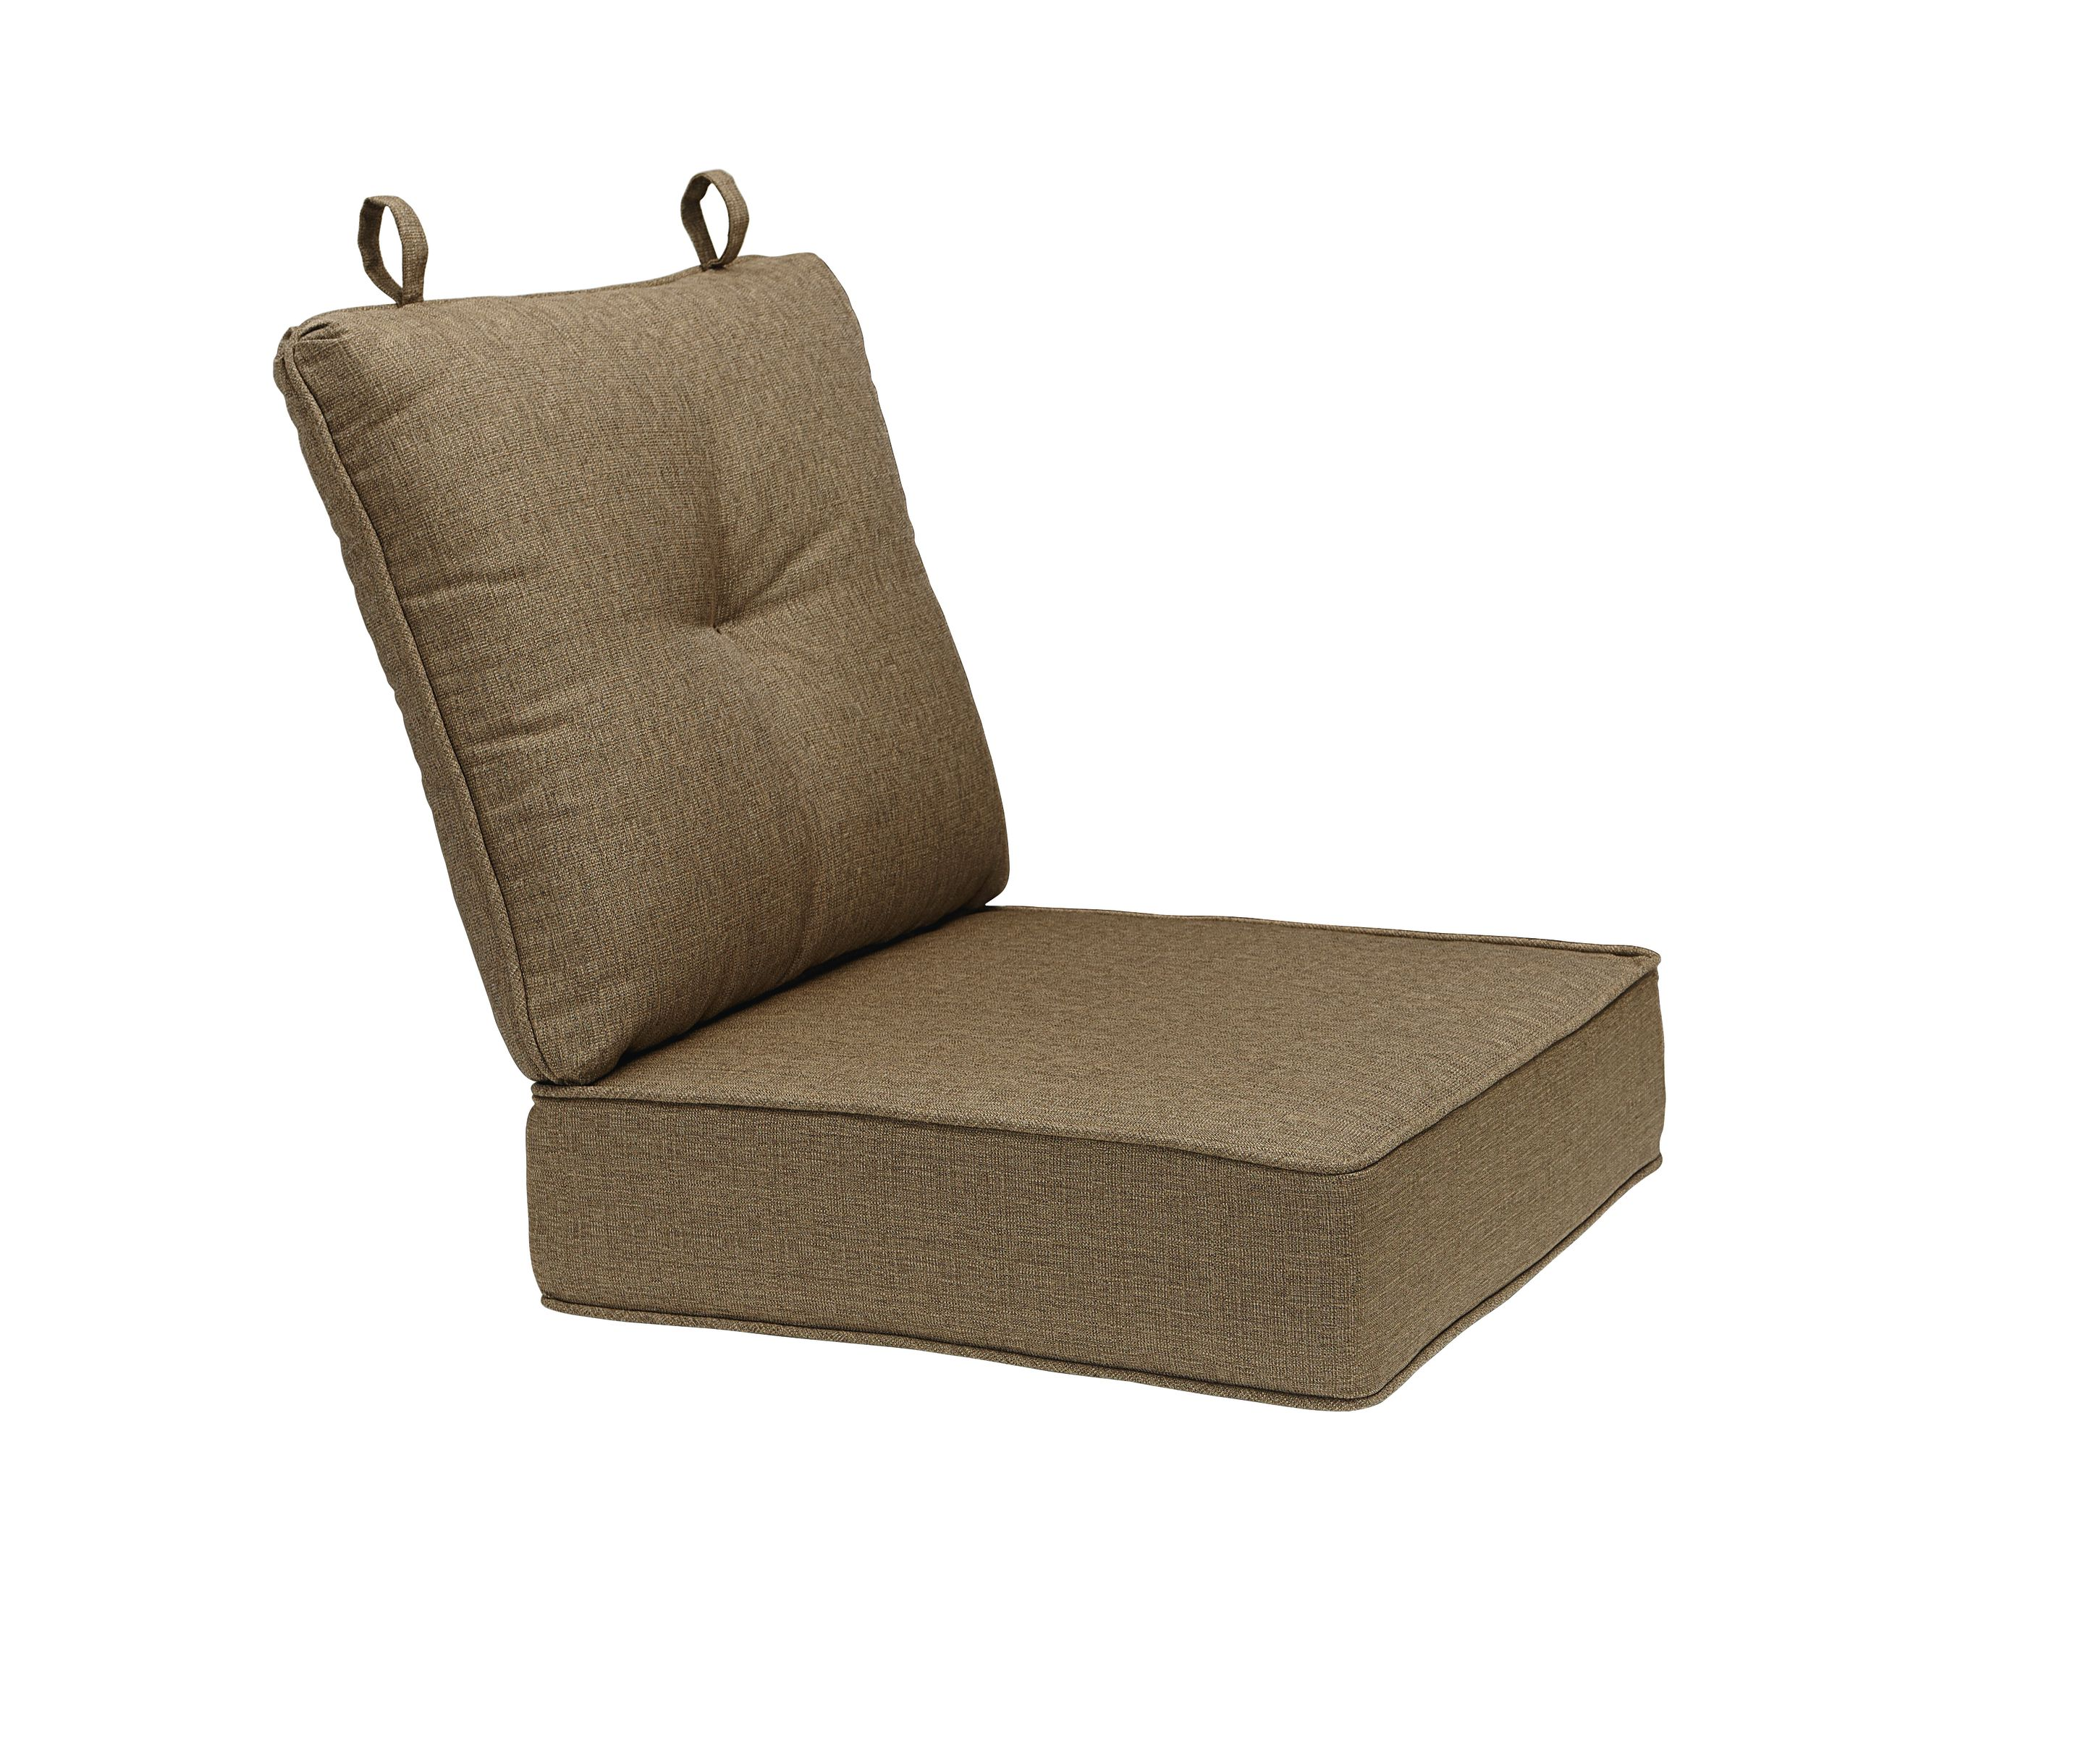 outdoor chair cushion covers australia bedroom cheap replacement sofa seat cushions